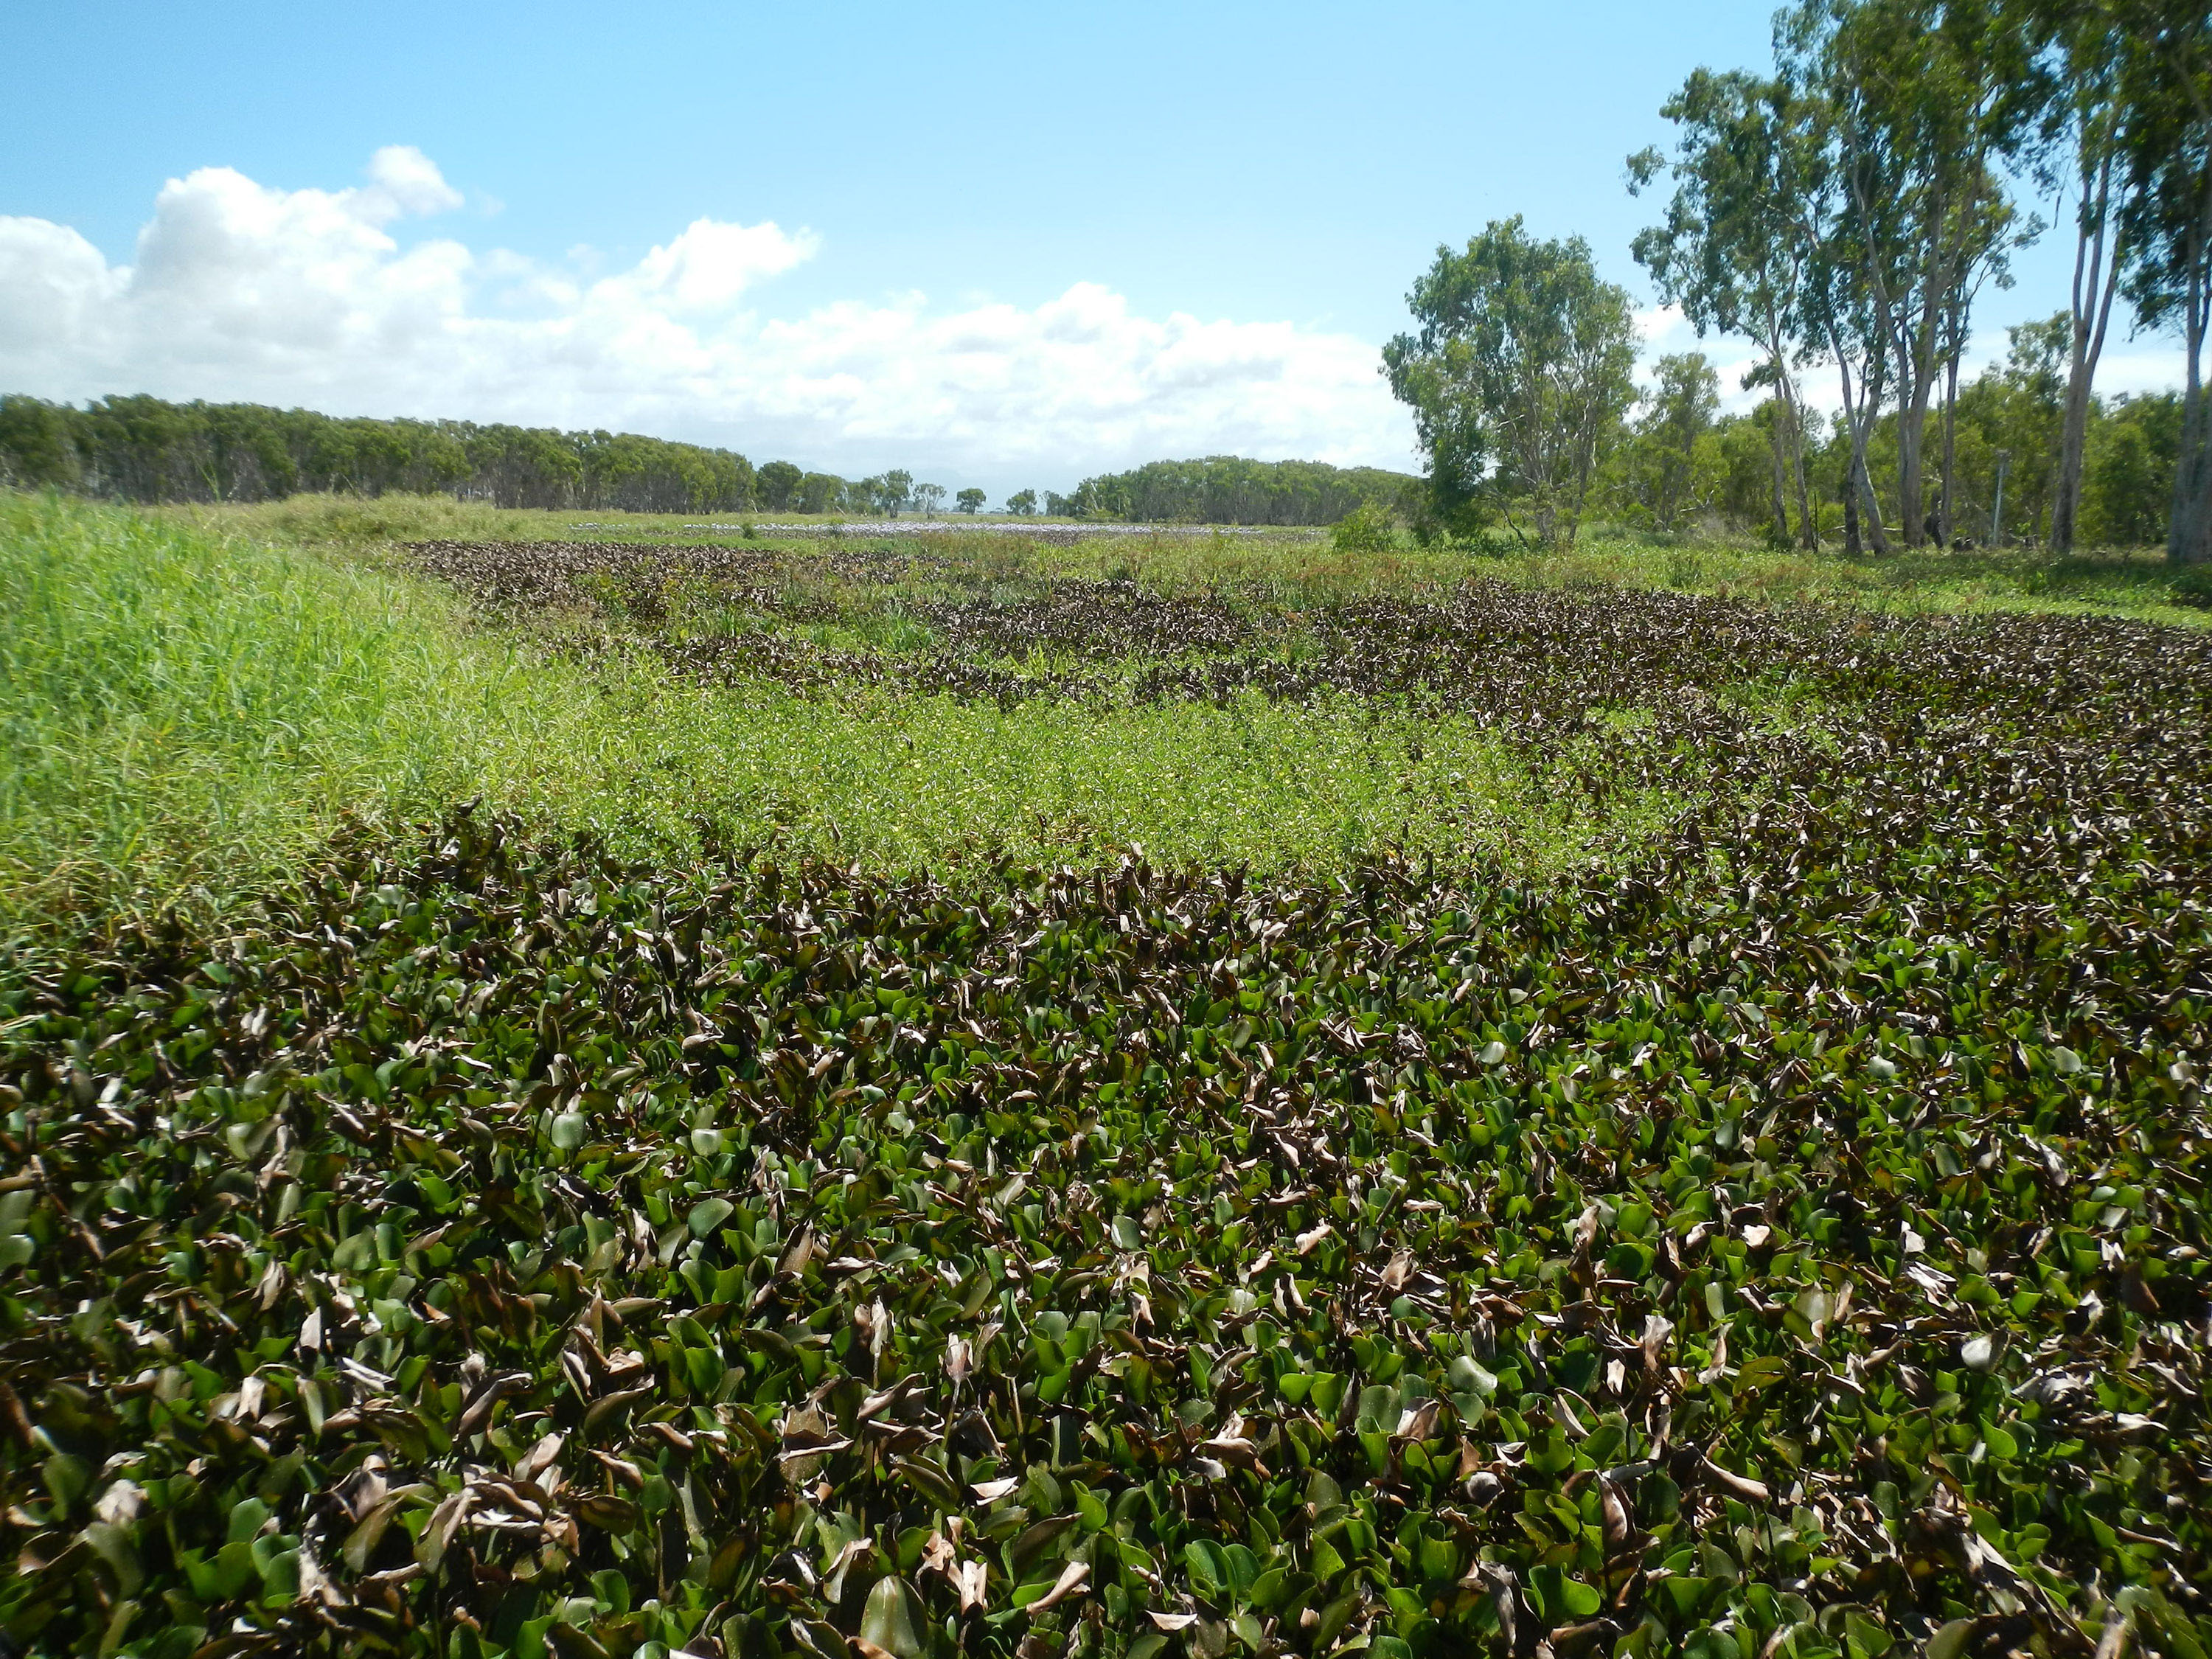 Terrible weed infestation above the wall at Mungalla wetlands, Ingham Queensland.Picture taken mid 2013.